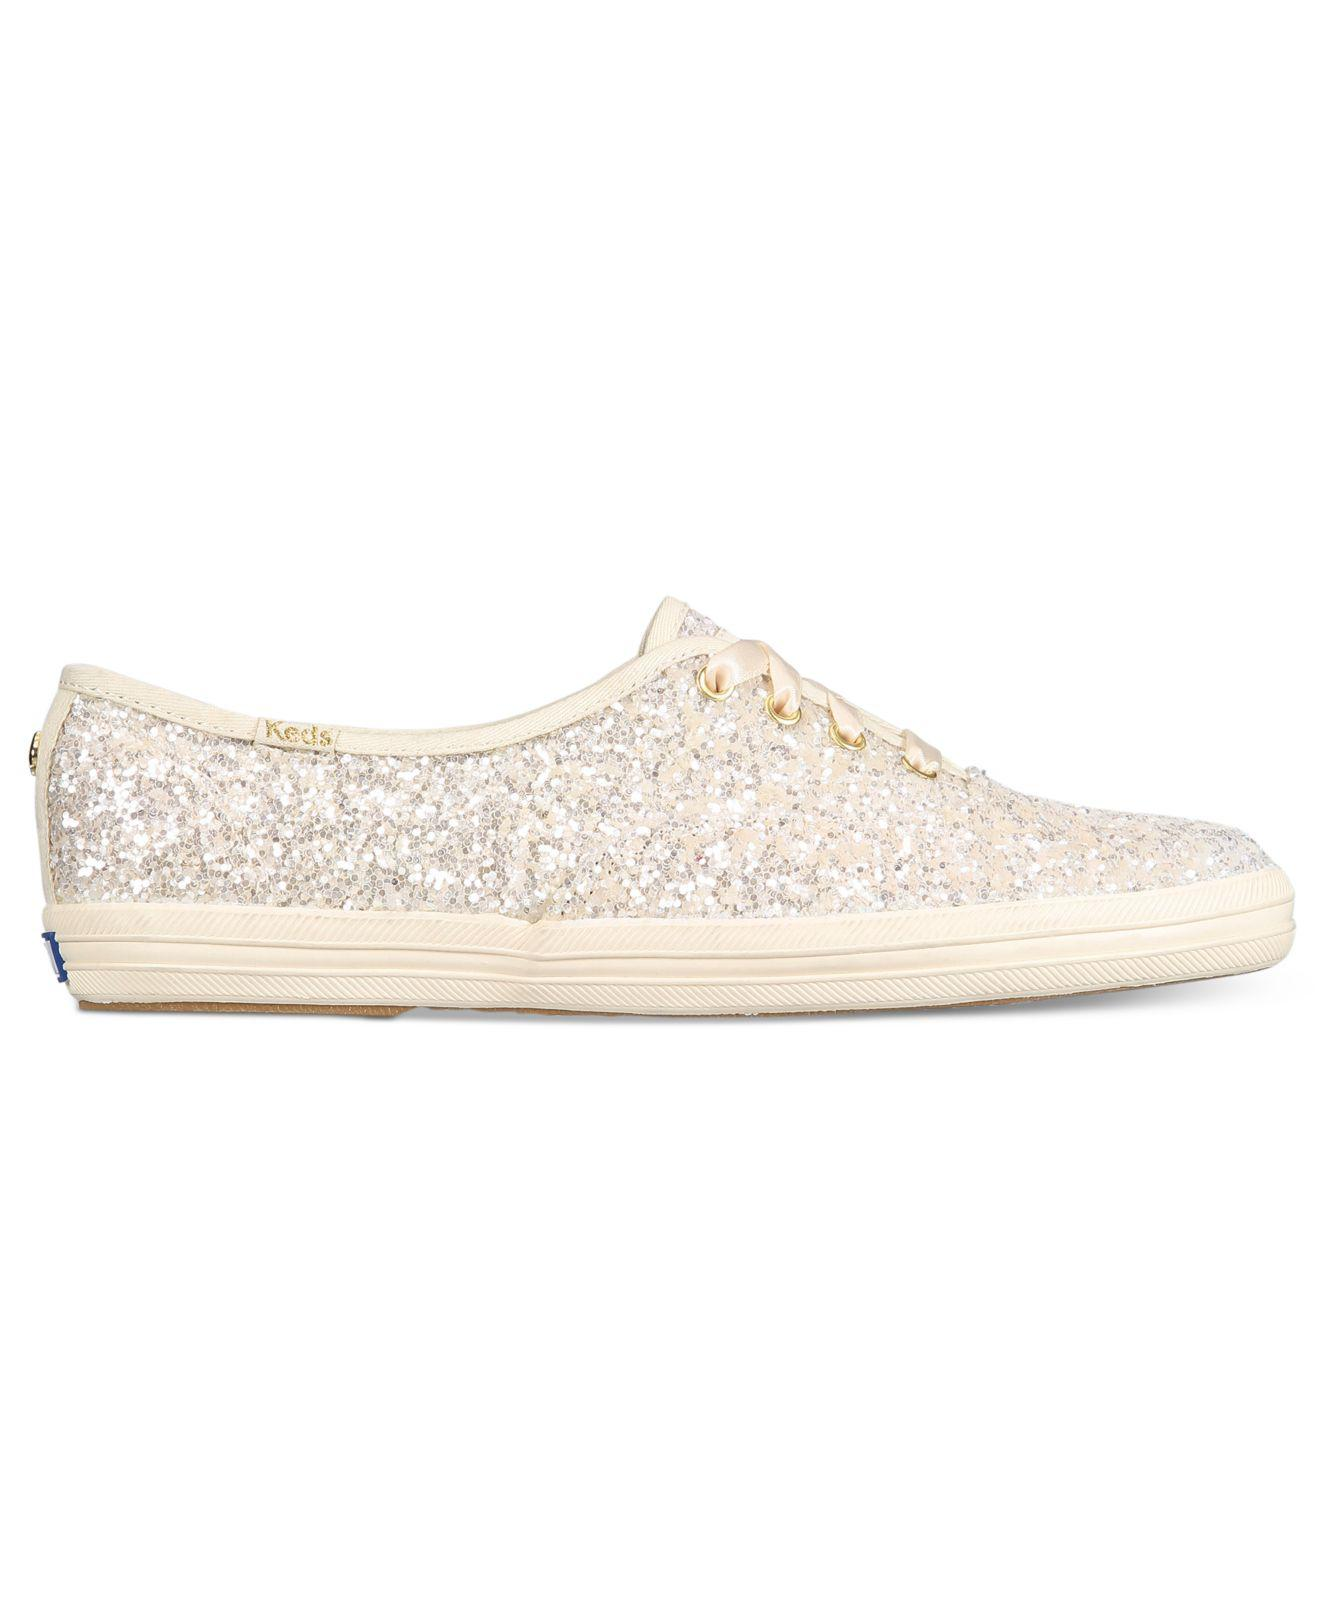 2ab15d0ffe Lyst - Kate Spade Keds For Glitter Lace-up Sneakers in Natural